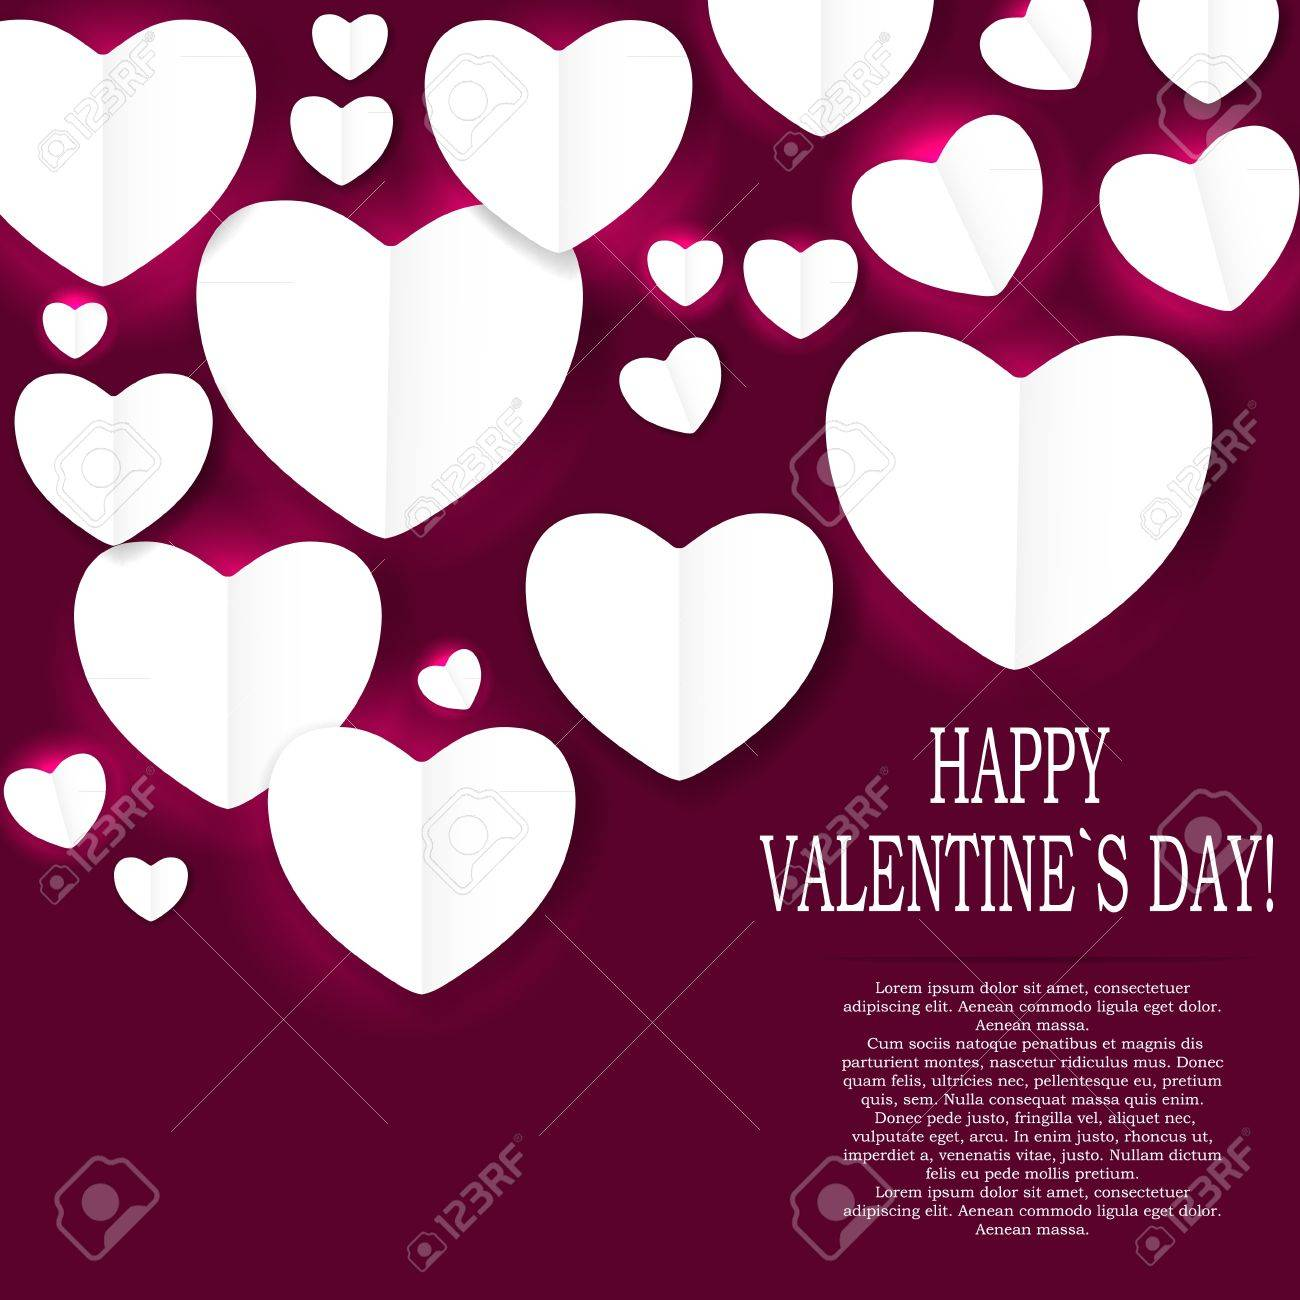 Valentines day paper heart backgroung, vector illustration Stock Vector - 17215939